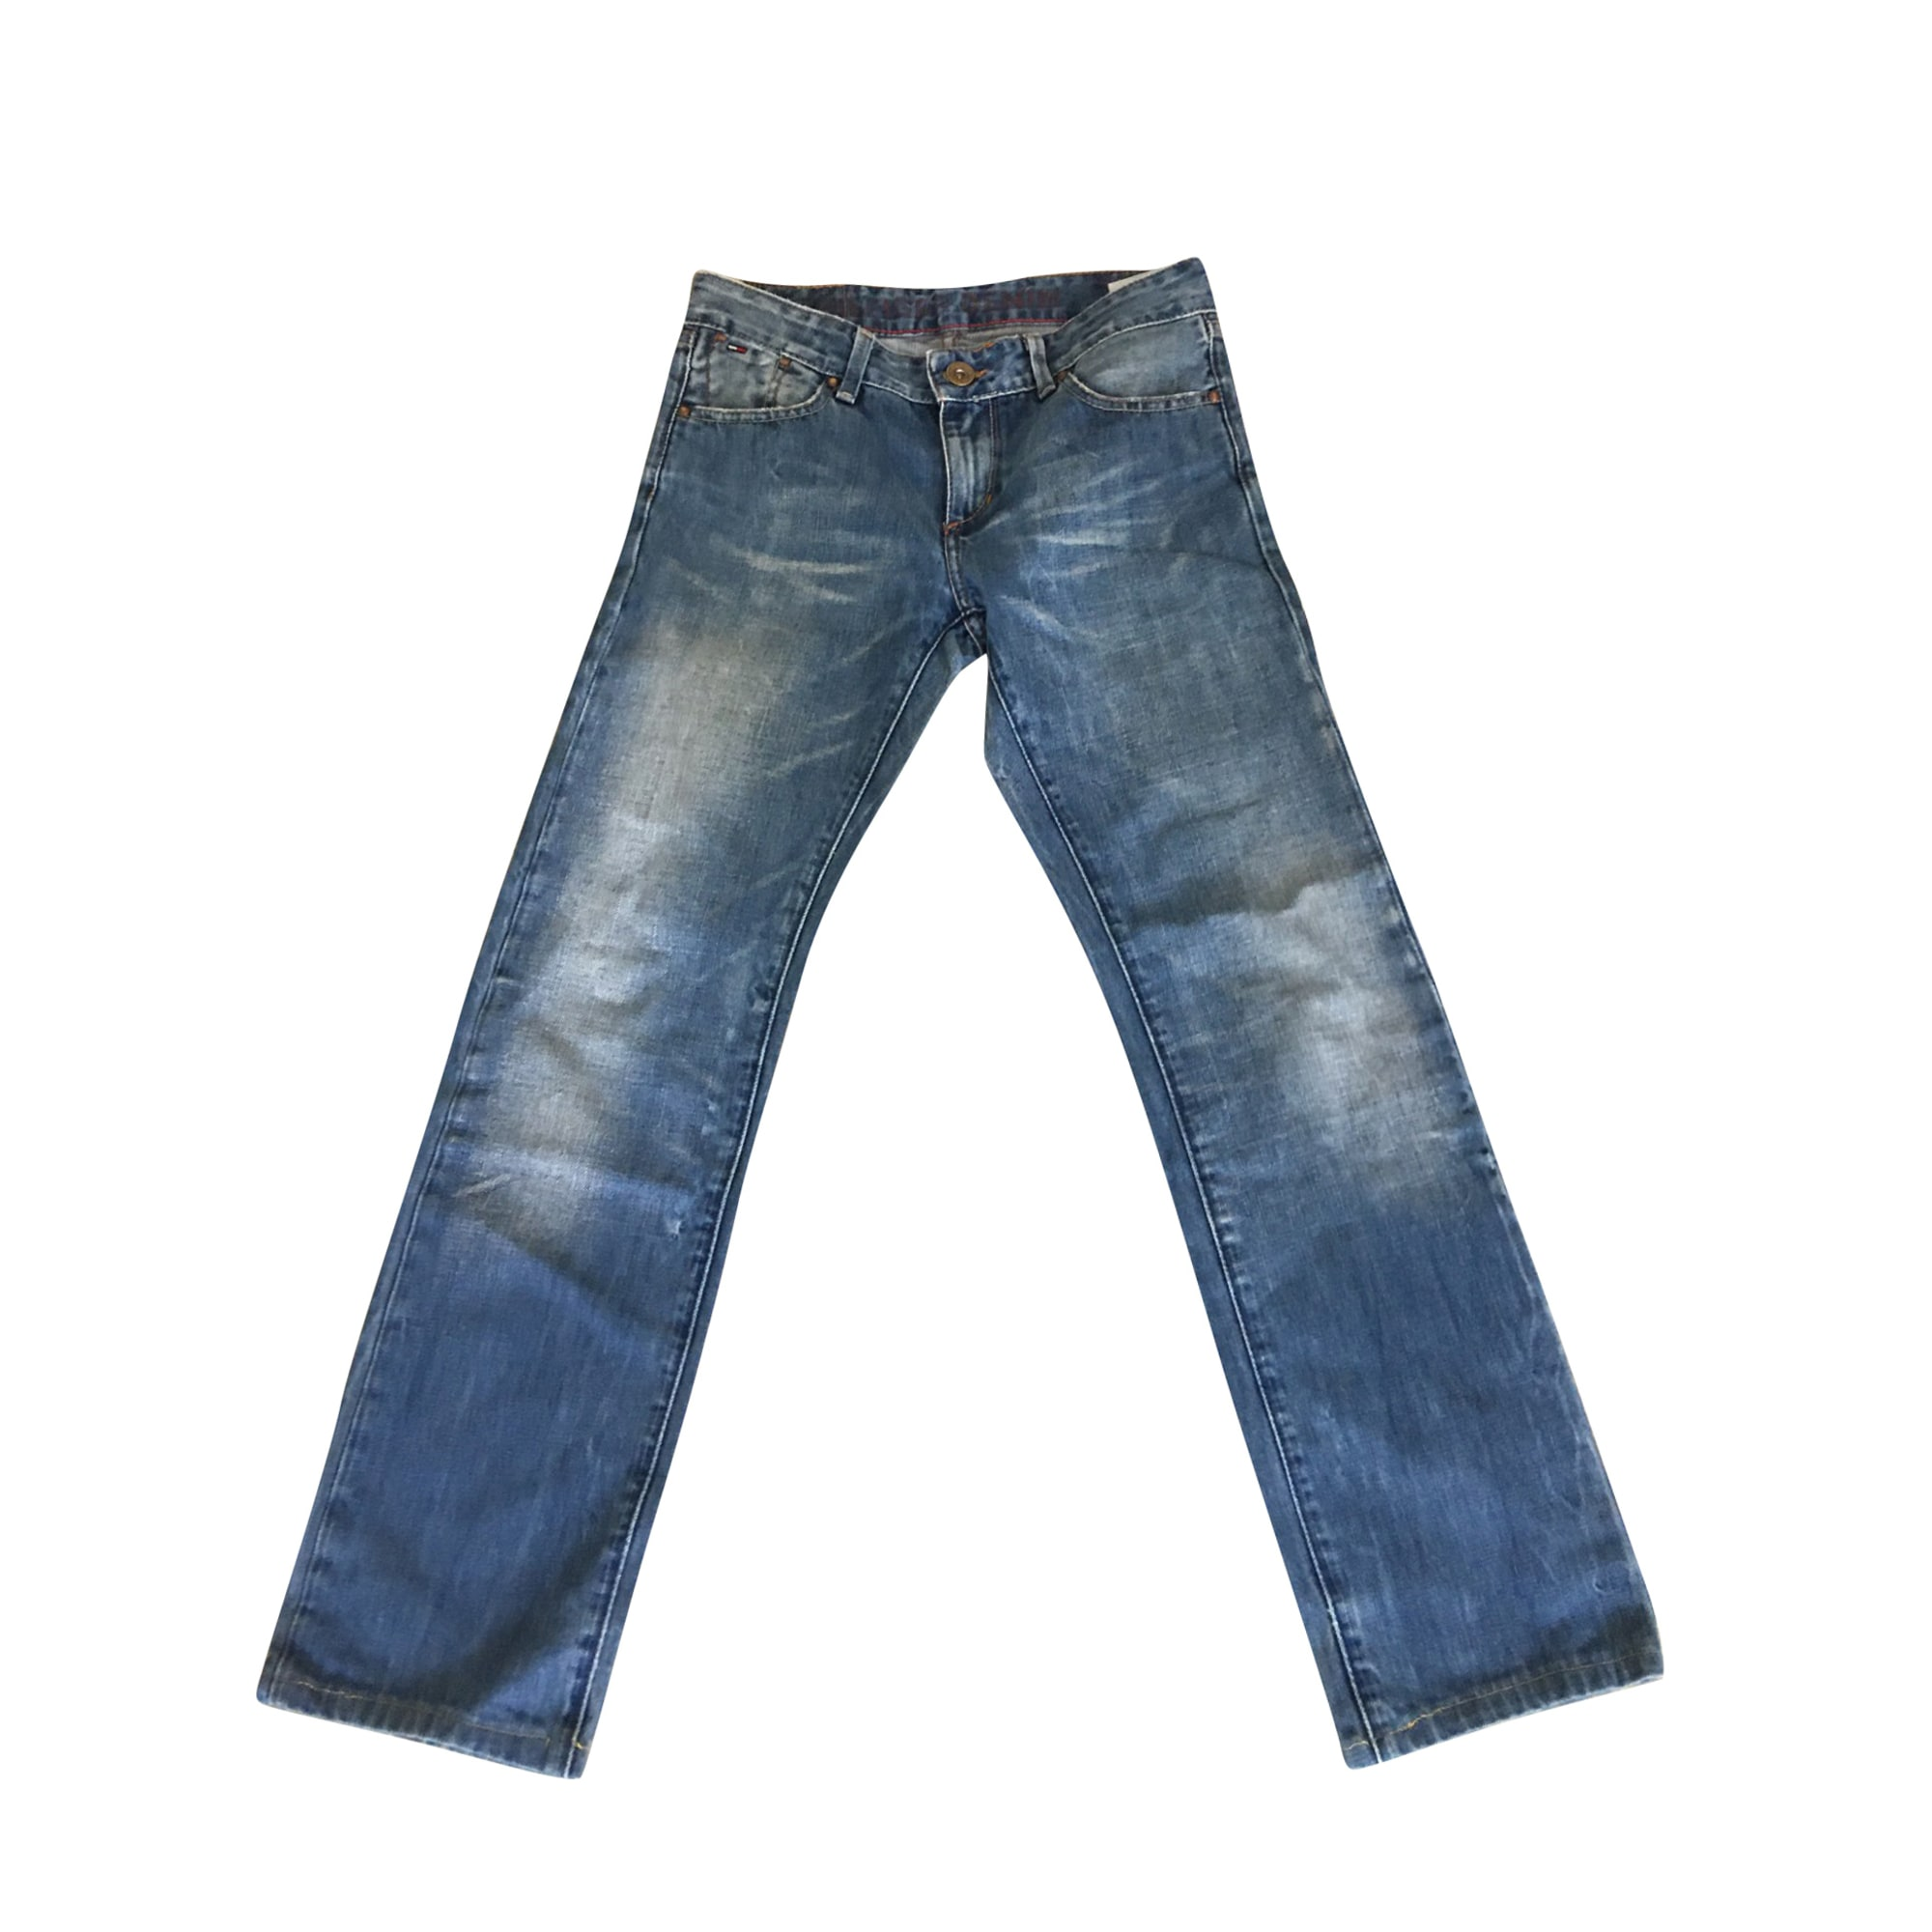 Straight Leg Jeans TOMMY HILFIGER Blue, navy, turquoise